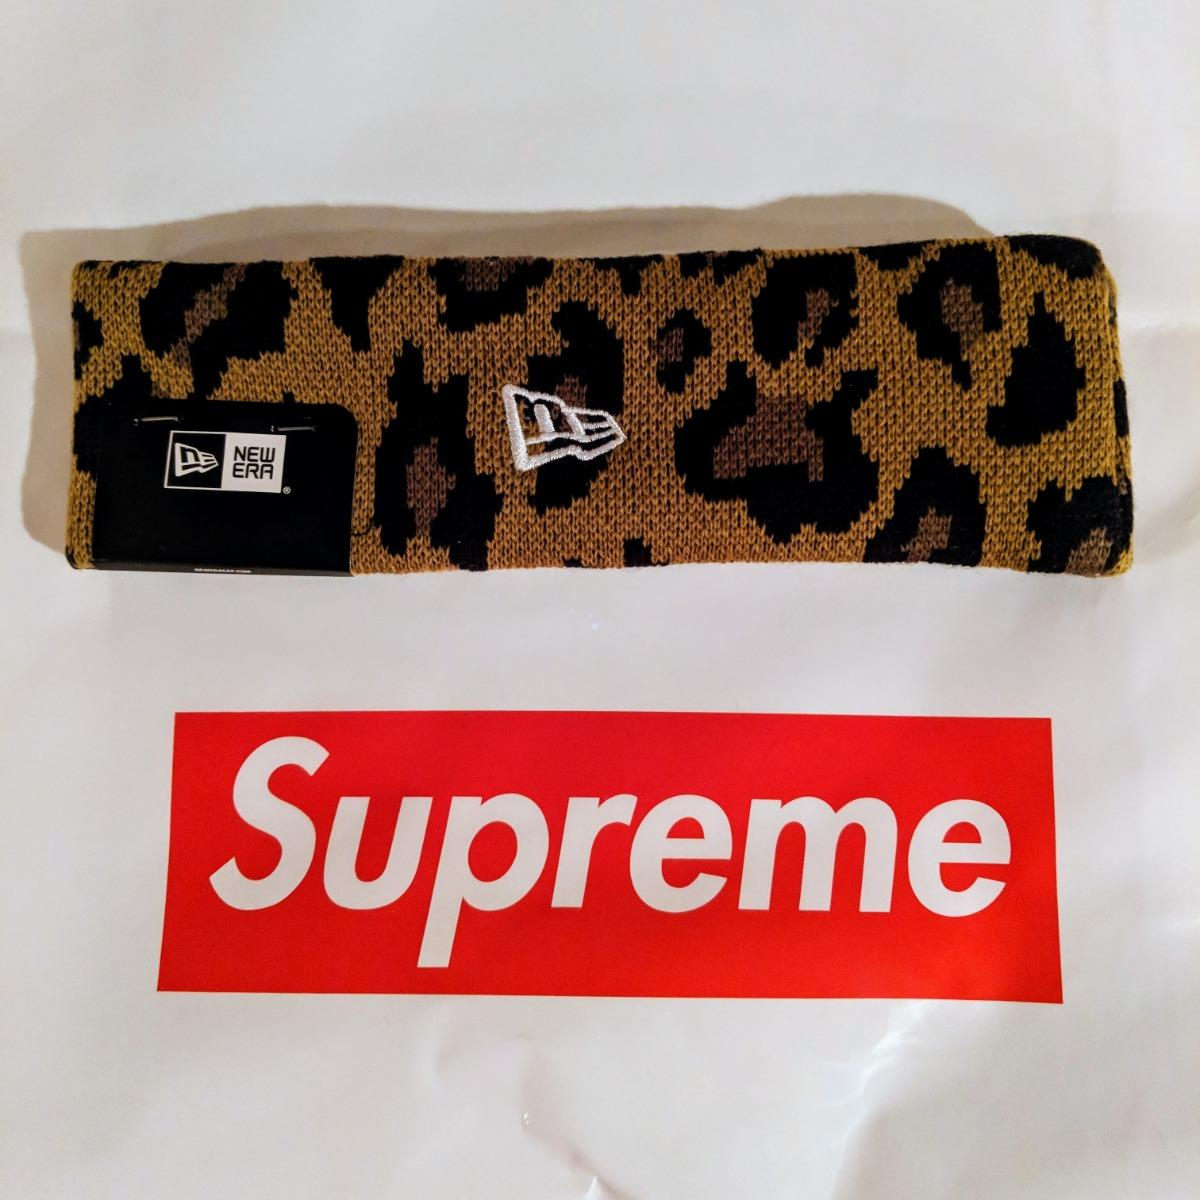 bb6849857028d Supreme x New Era Big Logo Headband • Hats • Strictlypreme